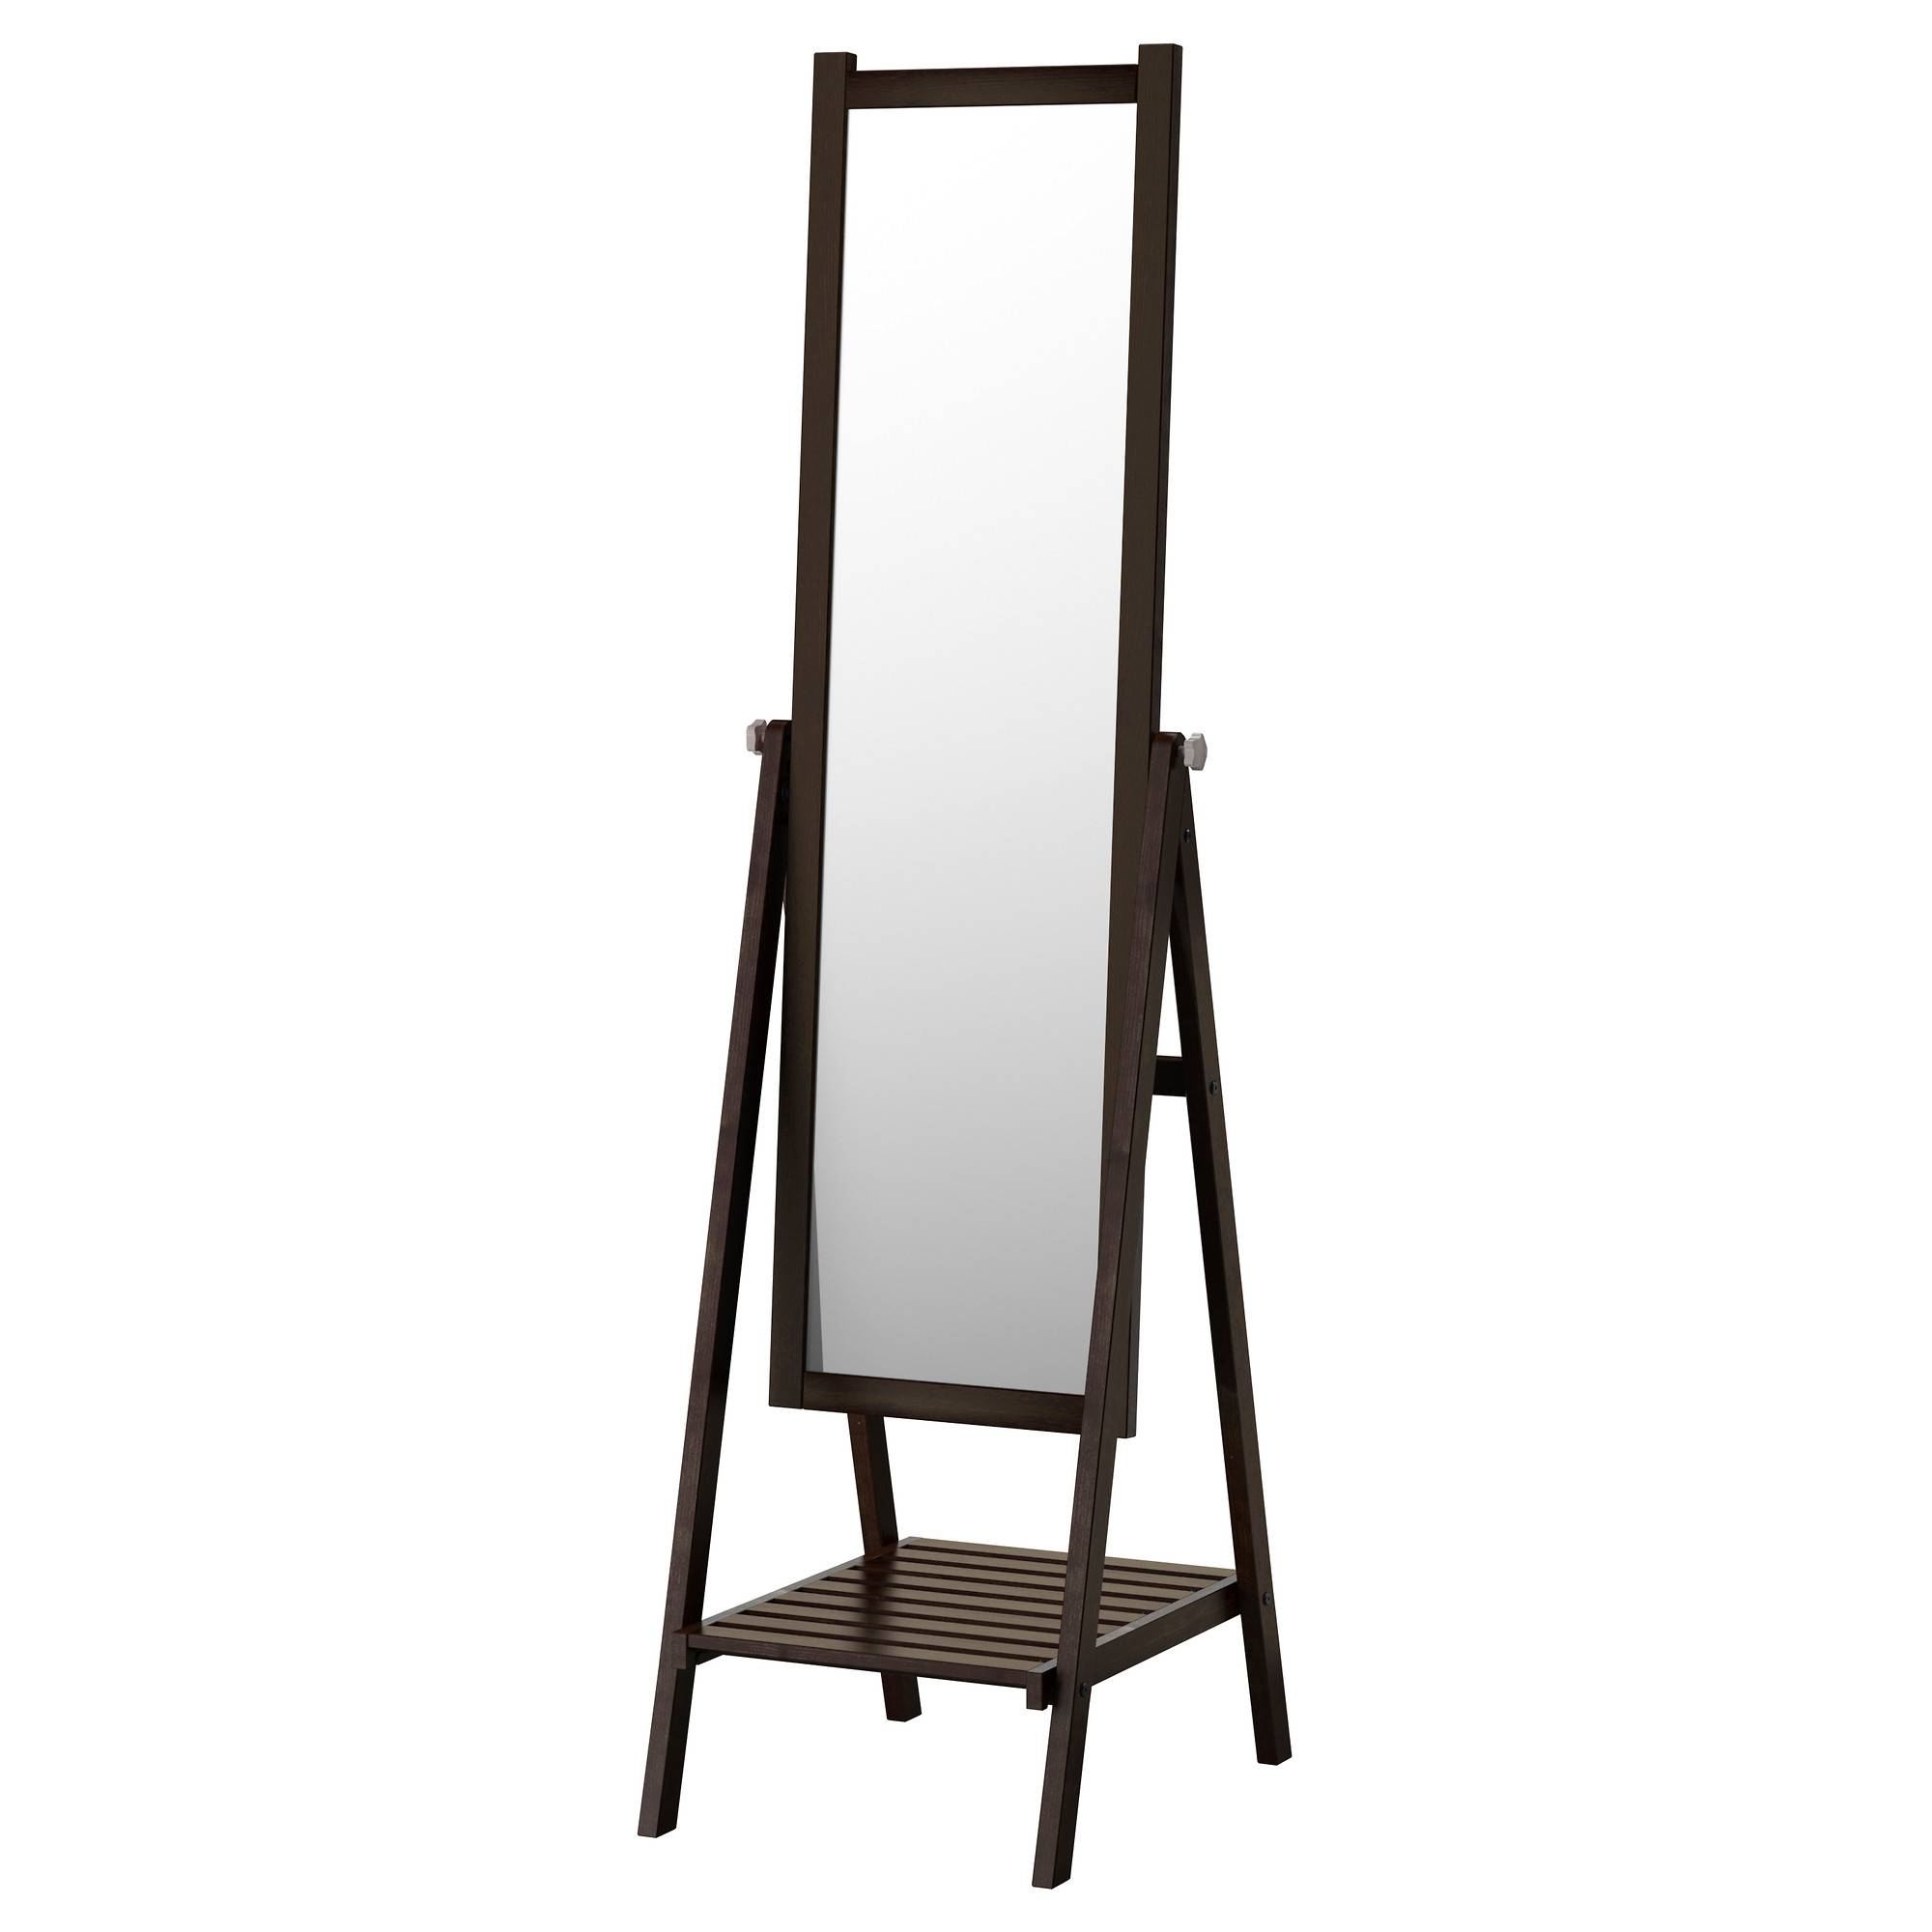 Full-Length Mirrors - Ikea with Huge Full Length Mirrors (Image 20 of 25)